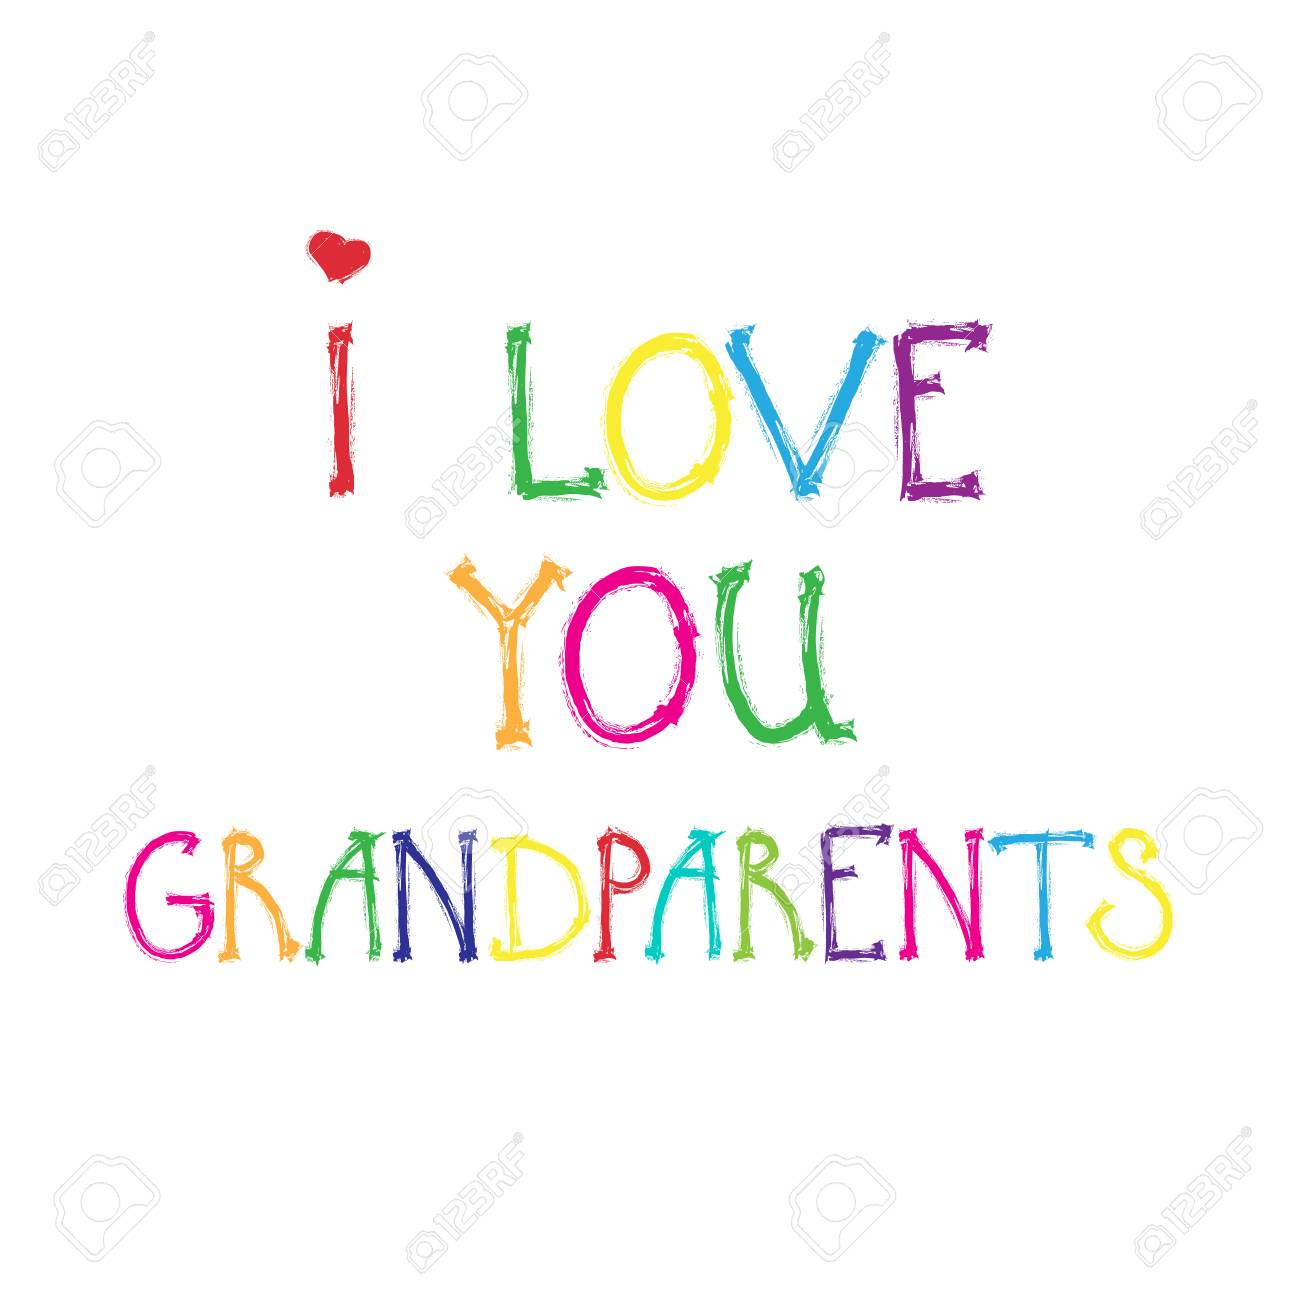 Happy Grandparents Day Greeting Card Banner Colorful Text Over